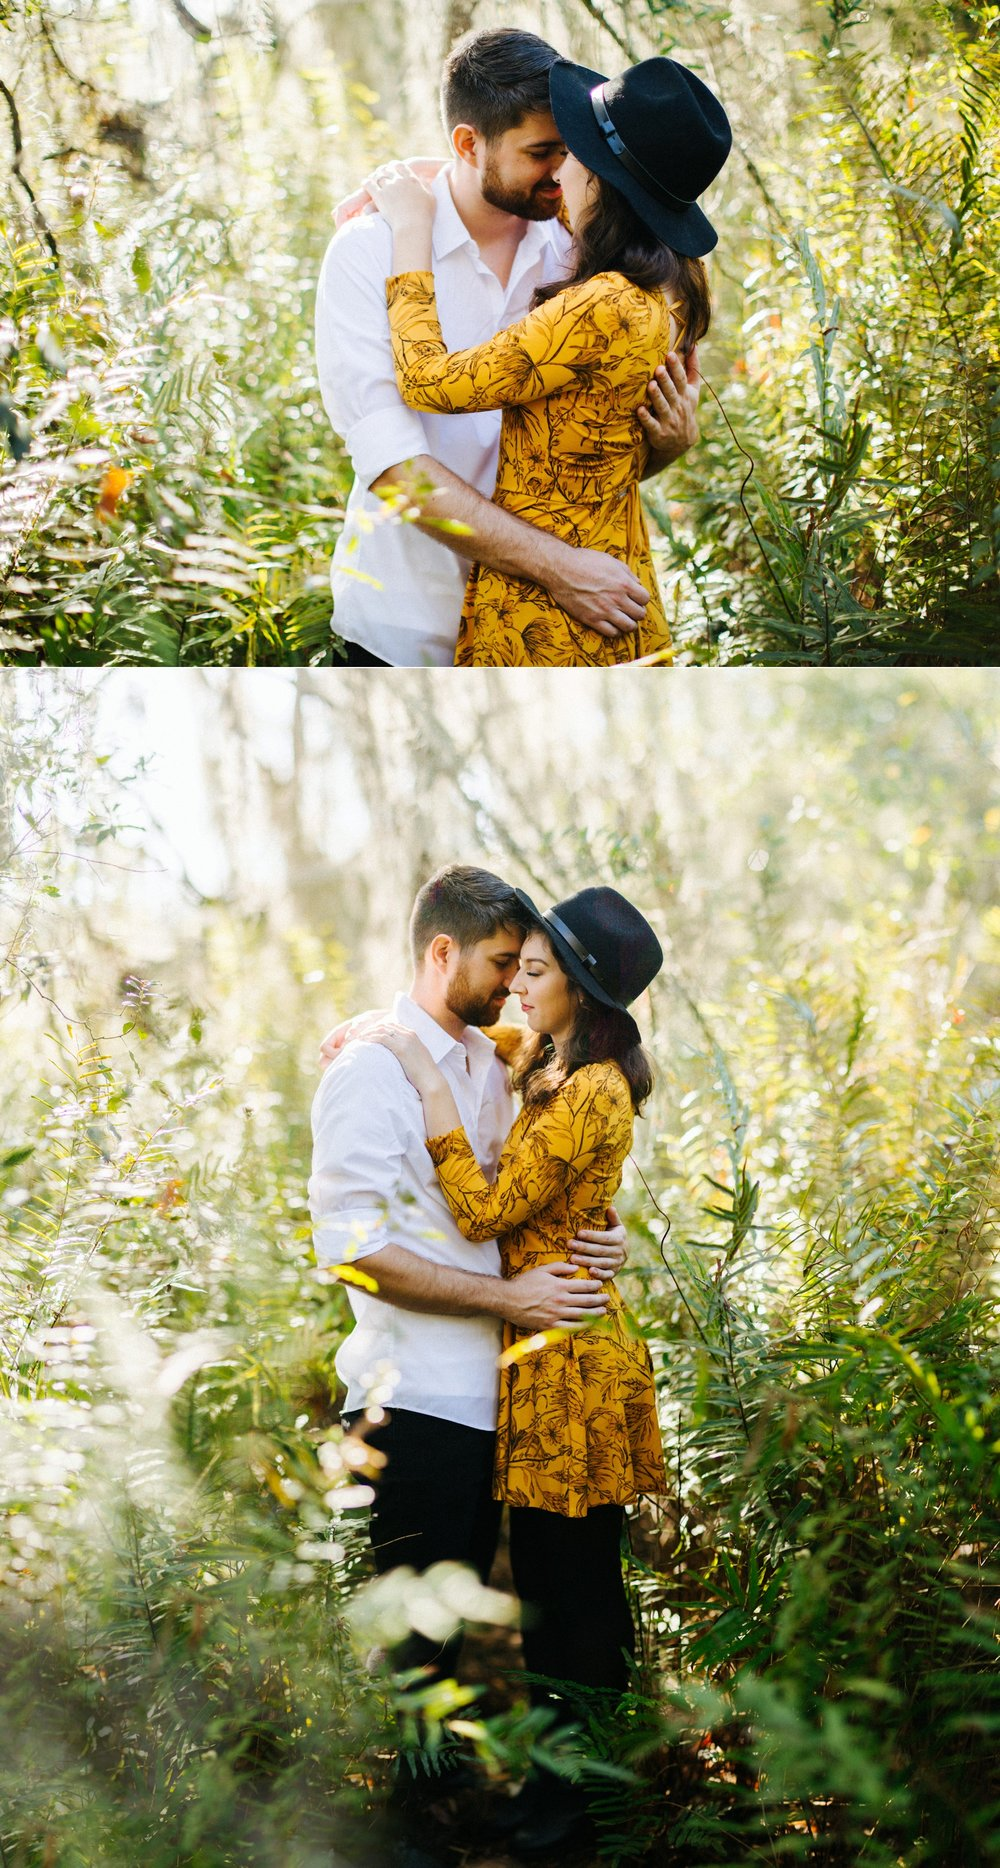 tampa engagement photographer jarrod kayleigh proposal jake and katie photography-018.jpg